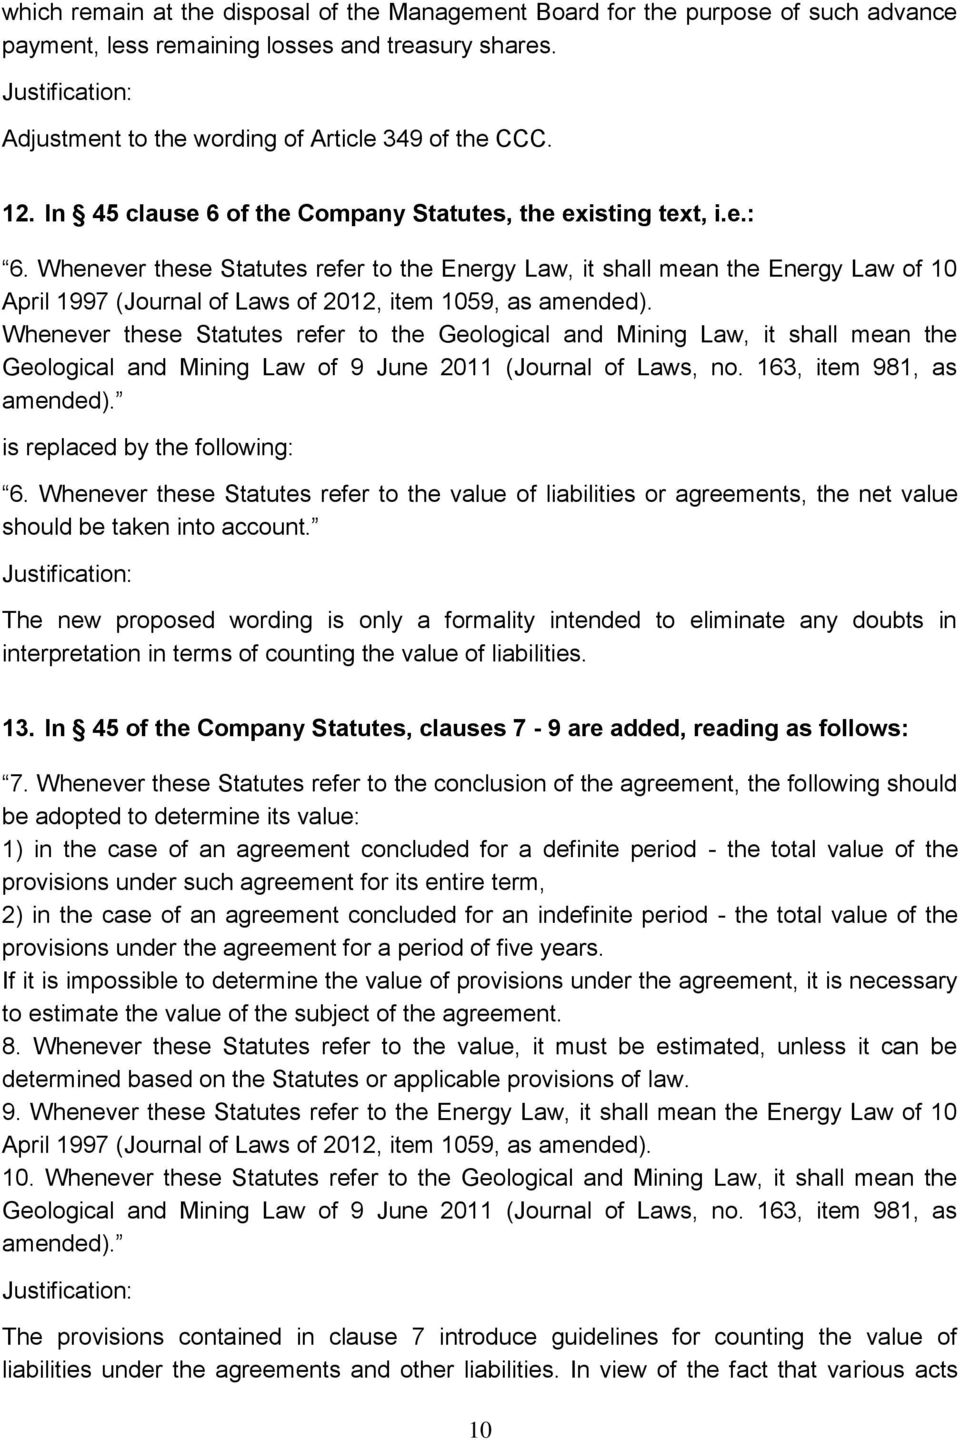 Whenever these Statutes refer to the Energy Law, it shall mean the Energy Law of 10 April 1997 (Journal of Laws of 2012, item 1059, as amended).